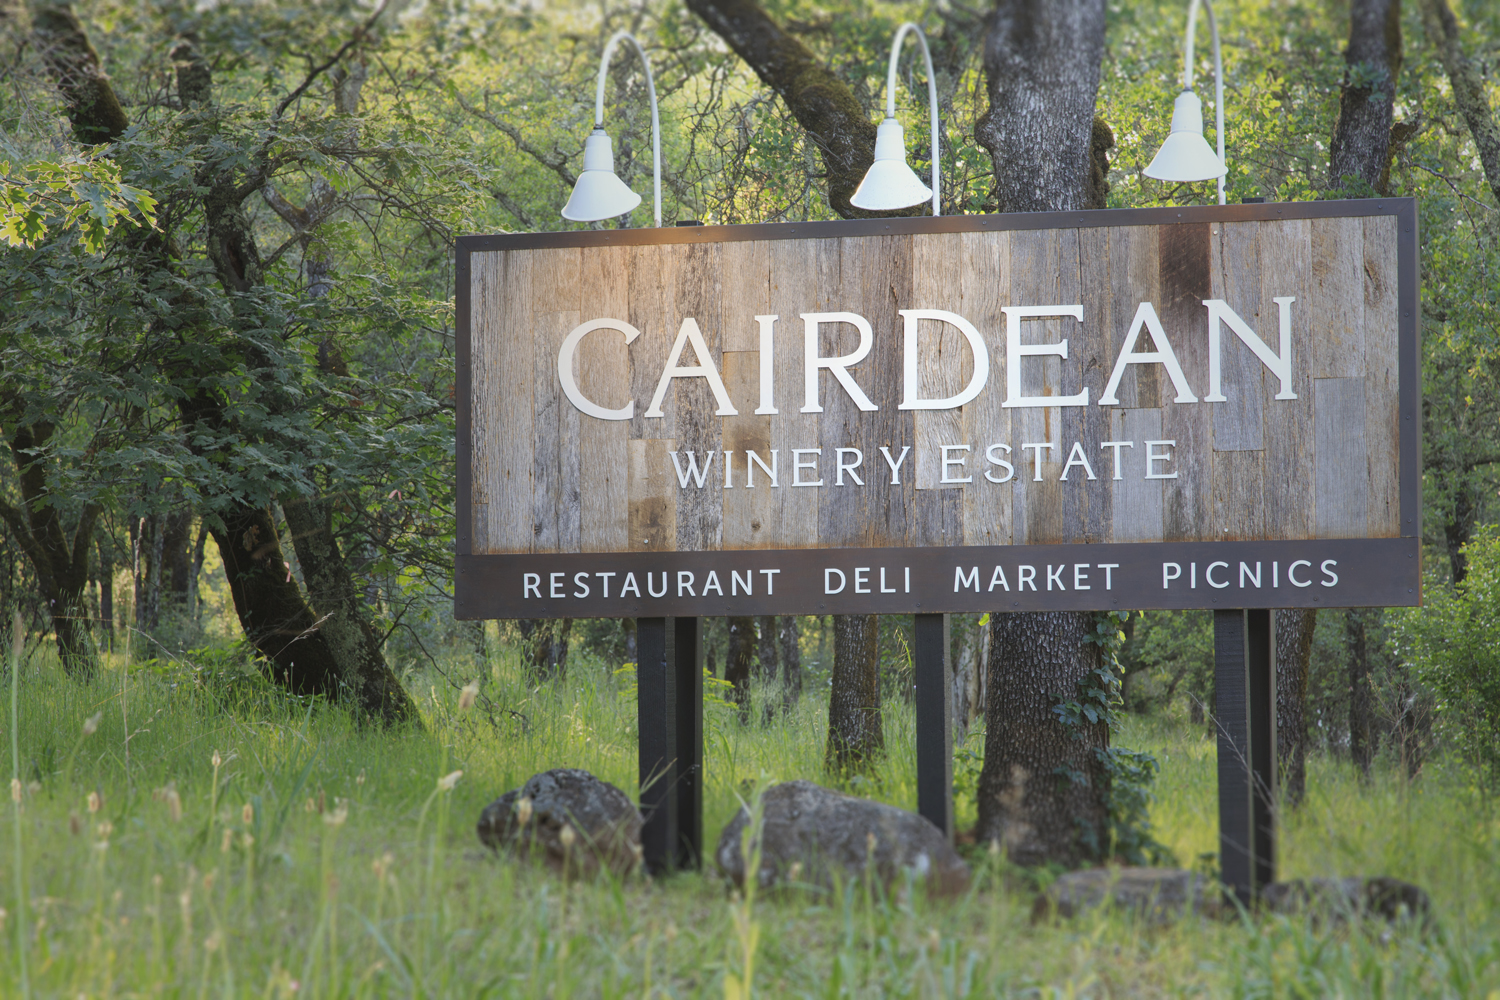 Monument sign for Cairdean Winery Estate using reclaimed barn wood and steel.